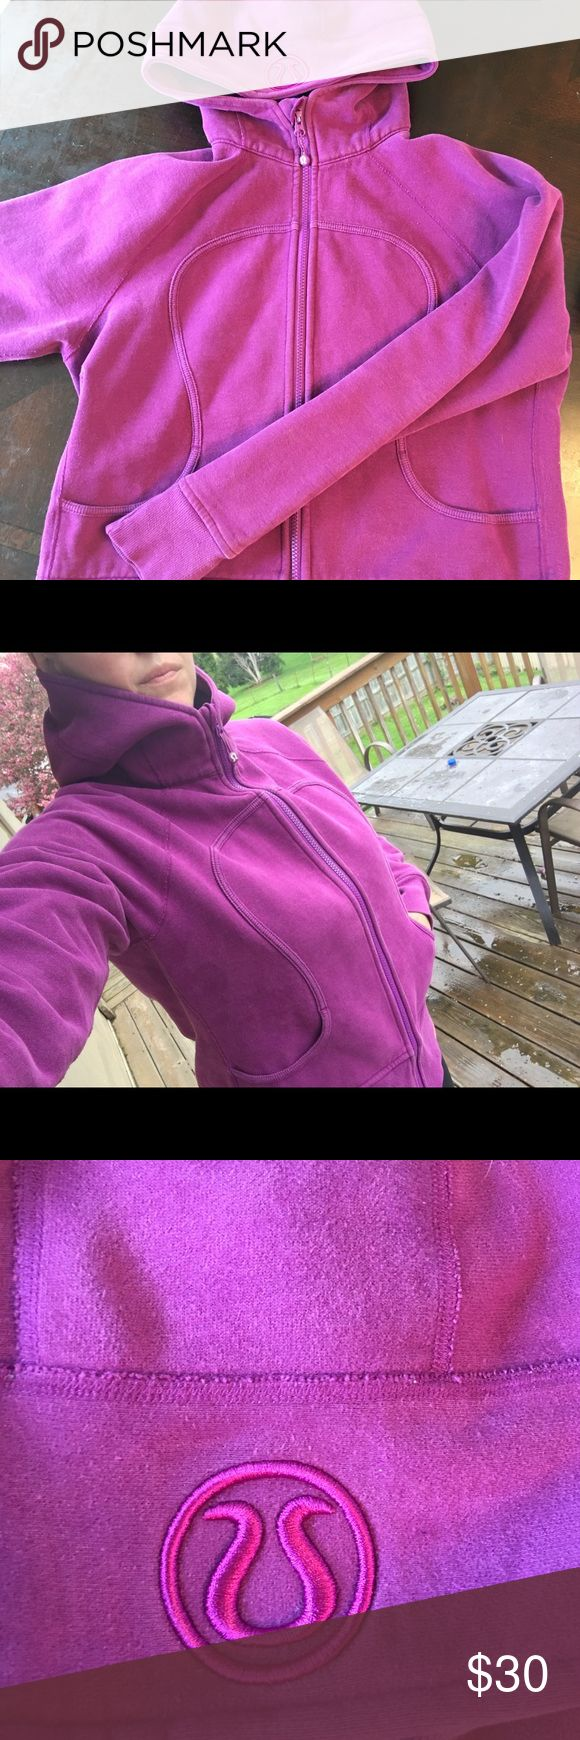 Lululemon scuba hoodie, plum, size 12 Lululemon scuba hoodie, plum colored. Previously loved but in great shape. Slightly faded but no holes, snags or stains. Size 12. lululemon athletica Tops Sweatshirts & Hoodies